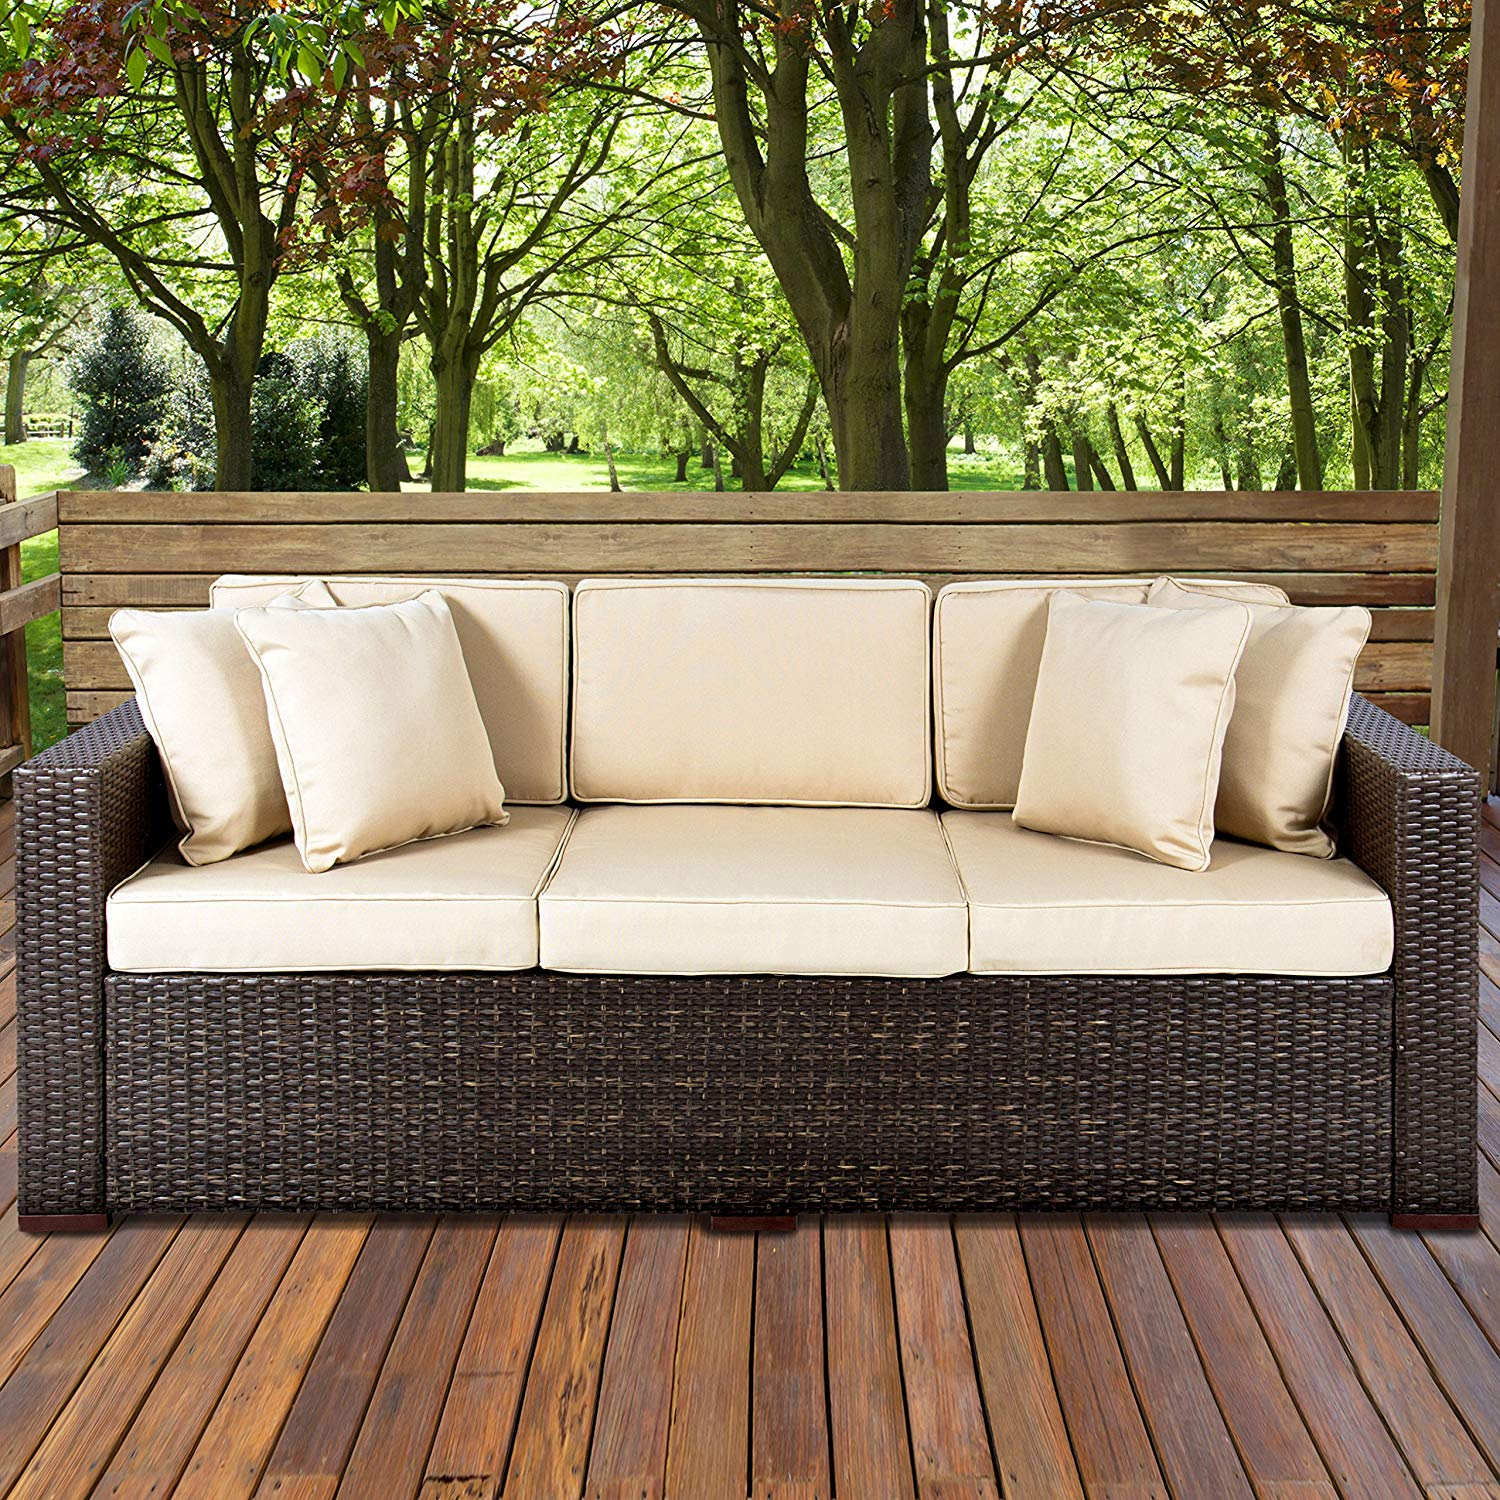 Cheap patio furniture amazon.com : best choice products 3-seat outdoor wicker sofa couch patio IKGZSXH